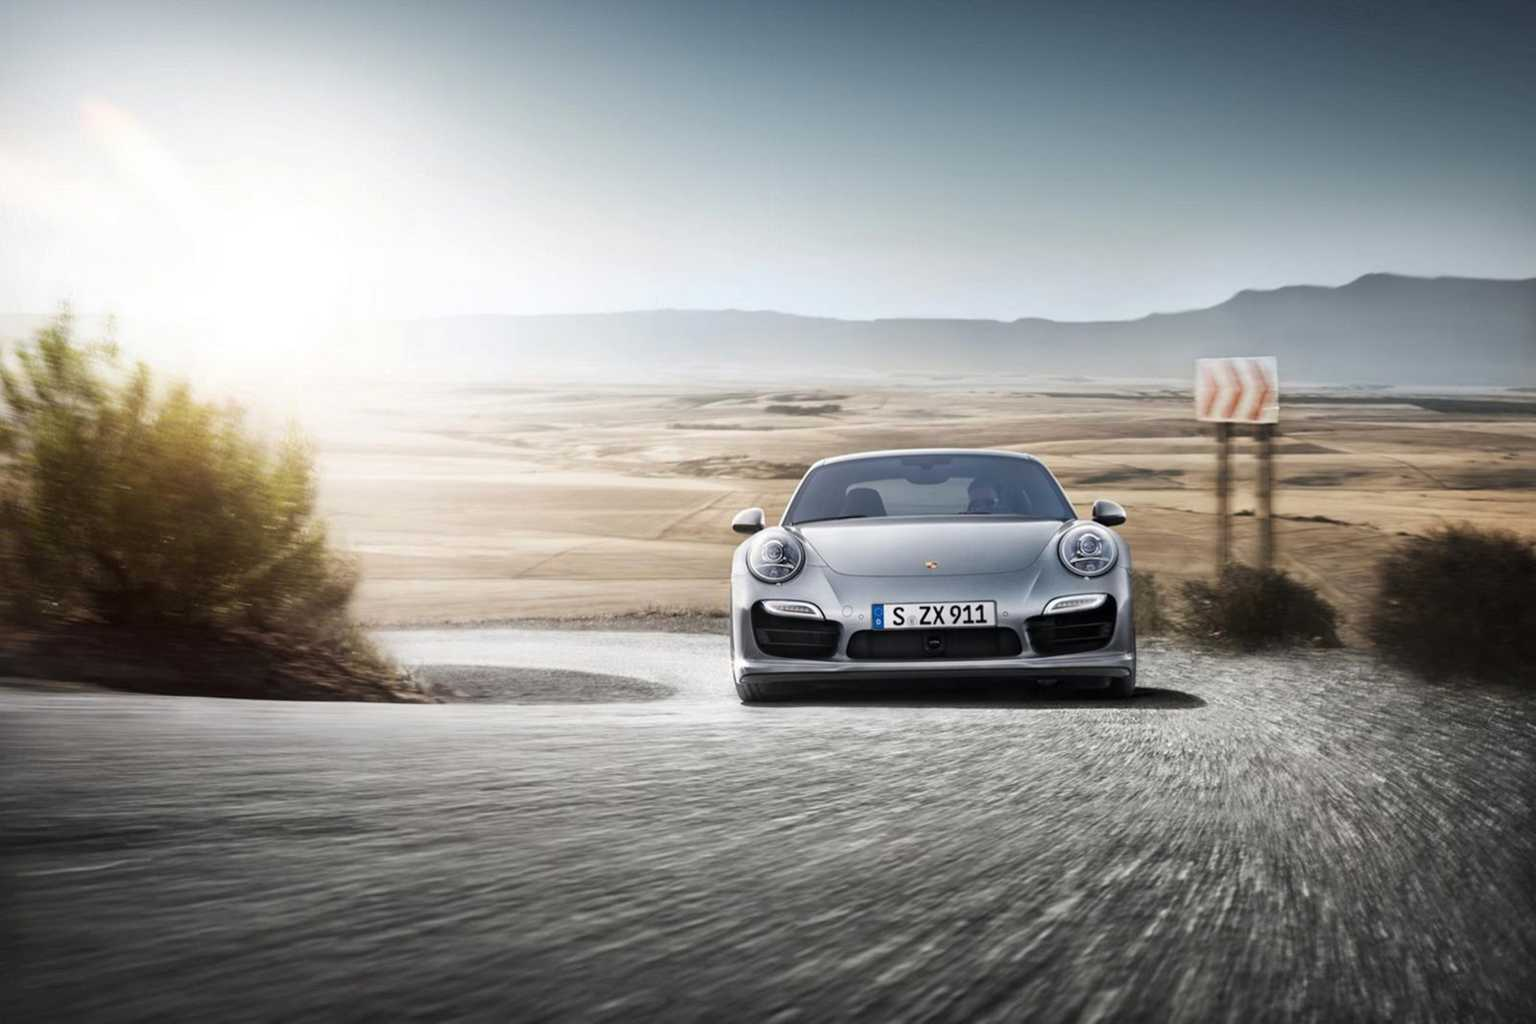 Porsche Wallpaper Hd   image 206 1536x1024